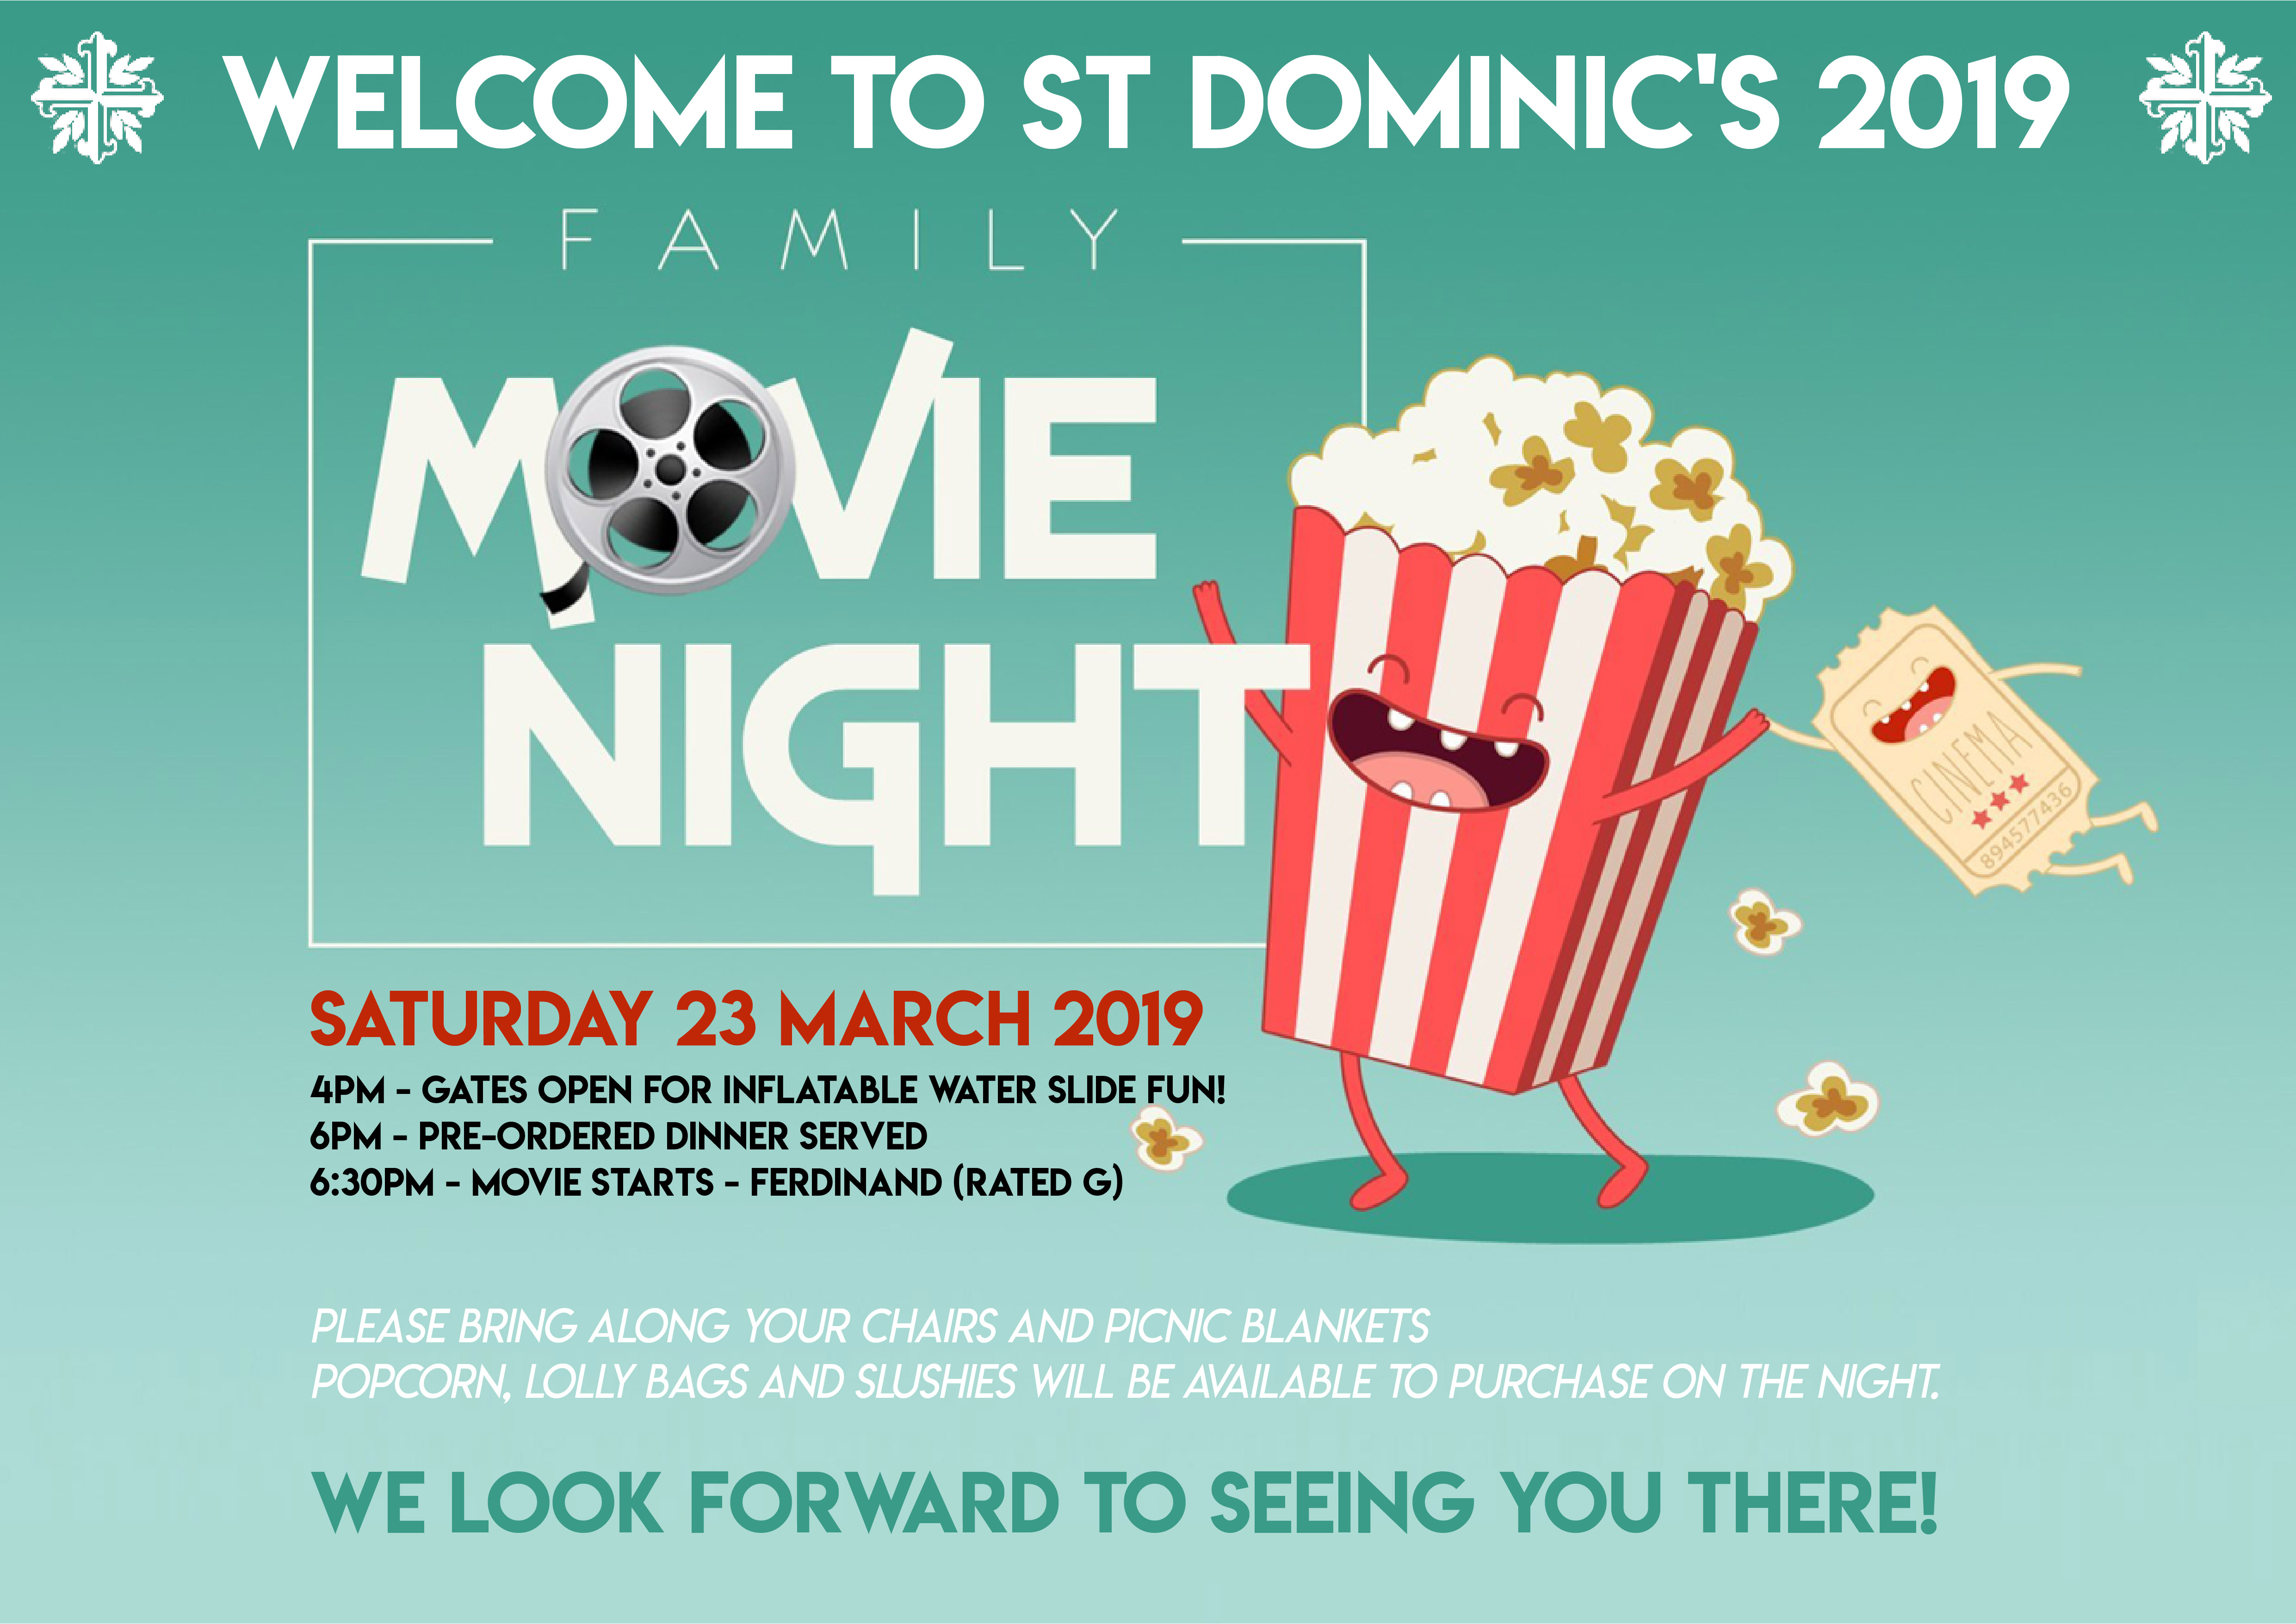 P&F Welcome to St Dominic's Movie Night Flyer